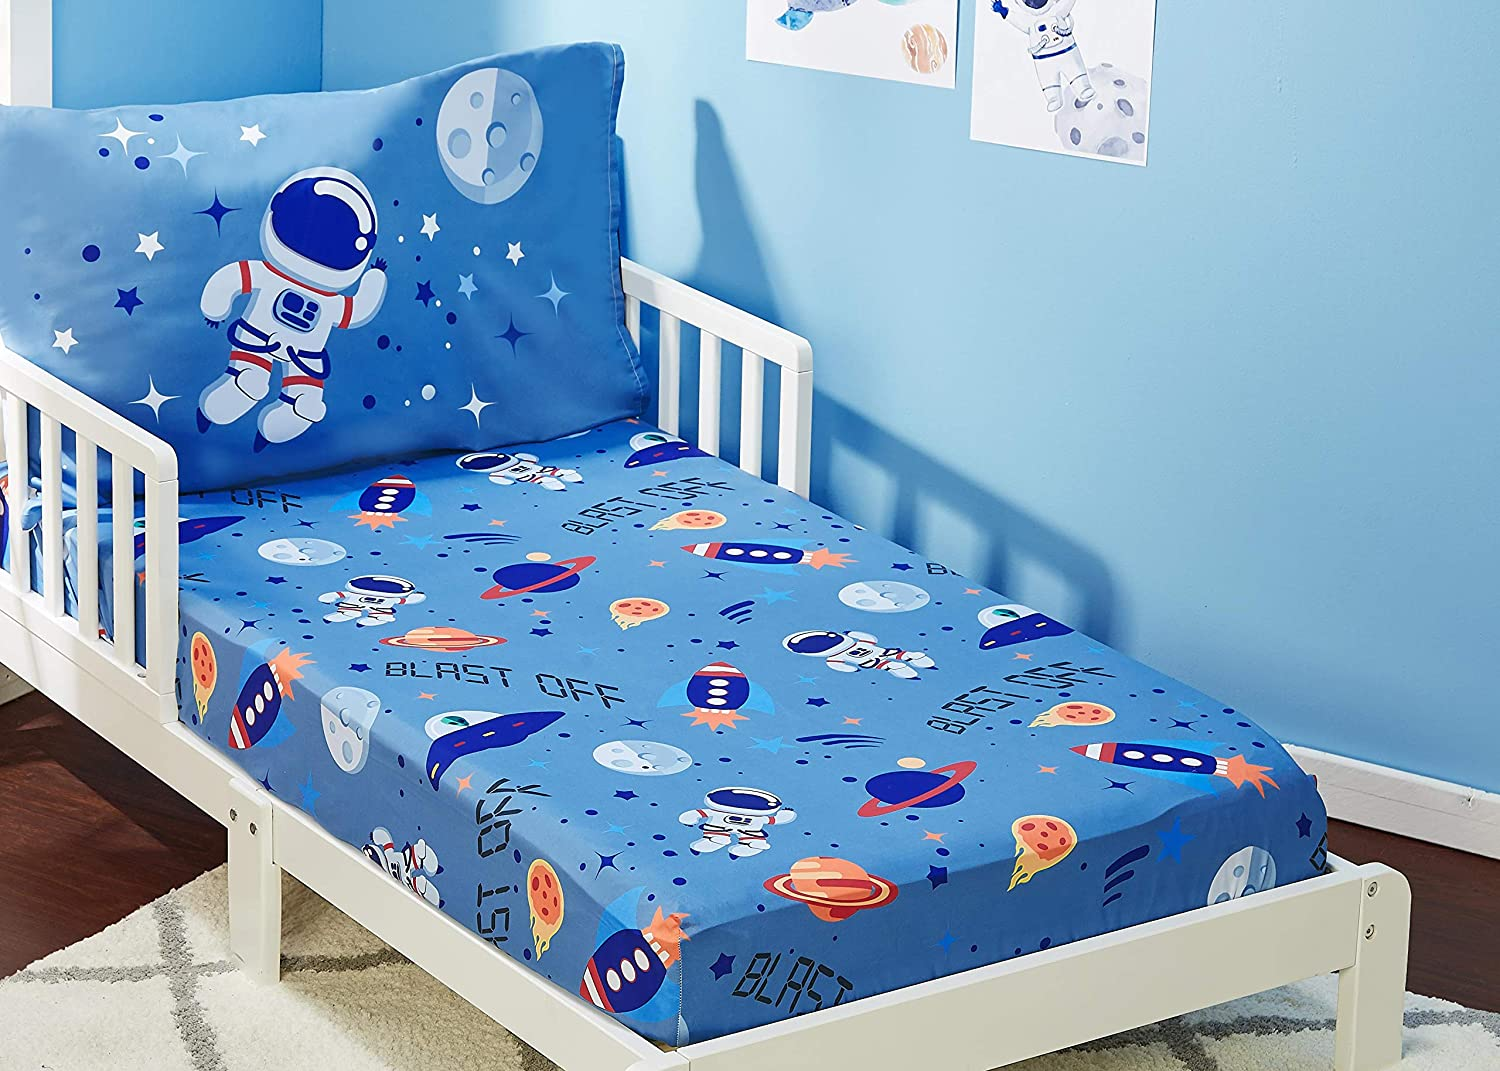 EVERYDAY KIDS 3-Piece Toddler Fitted Sheet Breathable and Hypoallergenic Boys Toddler Sheets Set Soft Microfiber Flat Sheet and Pillowcase Set Choo Choo Train Toddler Bed Sheets